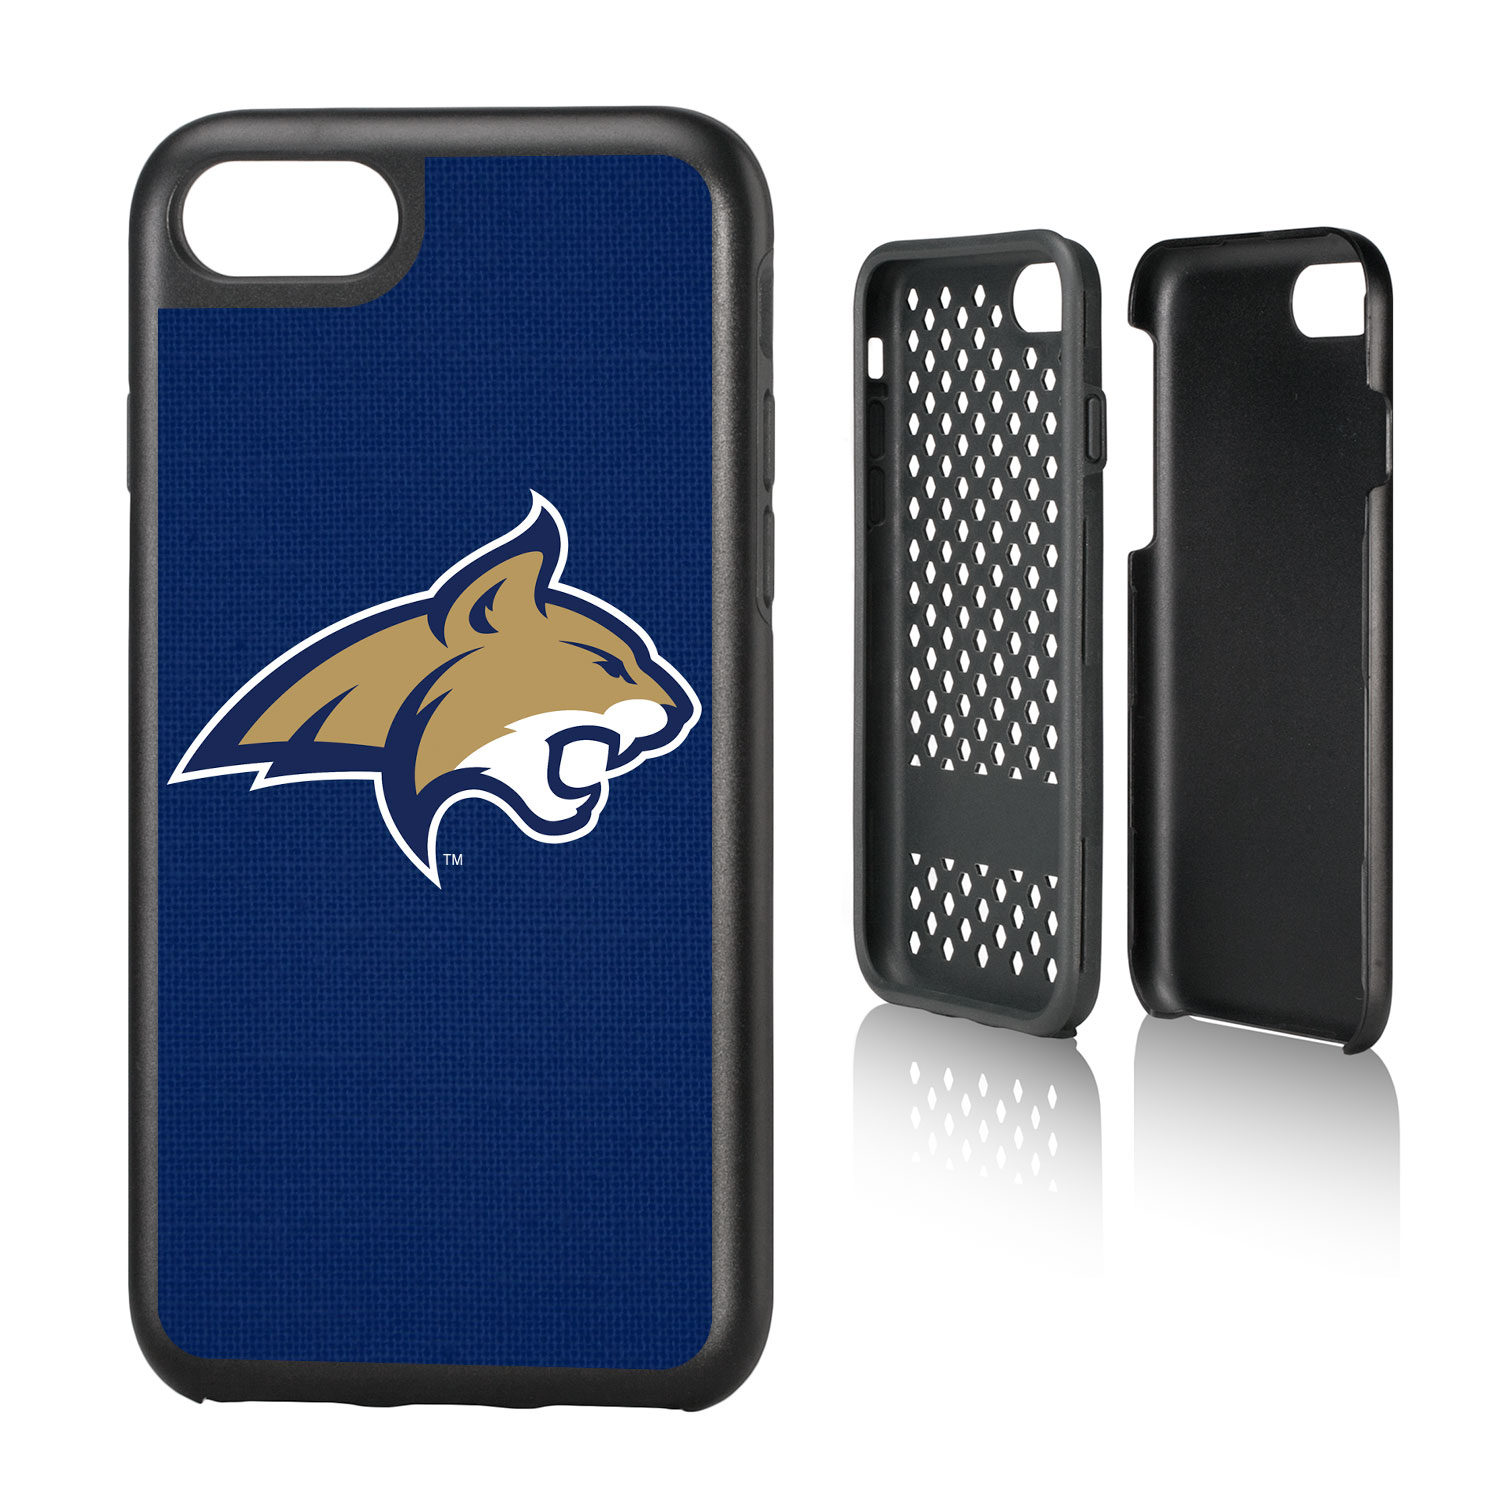 MSU Montana State Bobcats Solid Rugged Case for iPhone 8 / 7